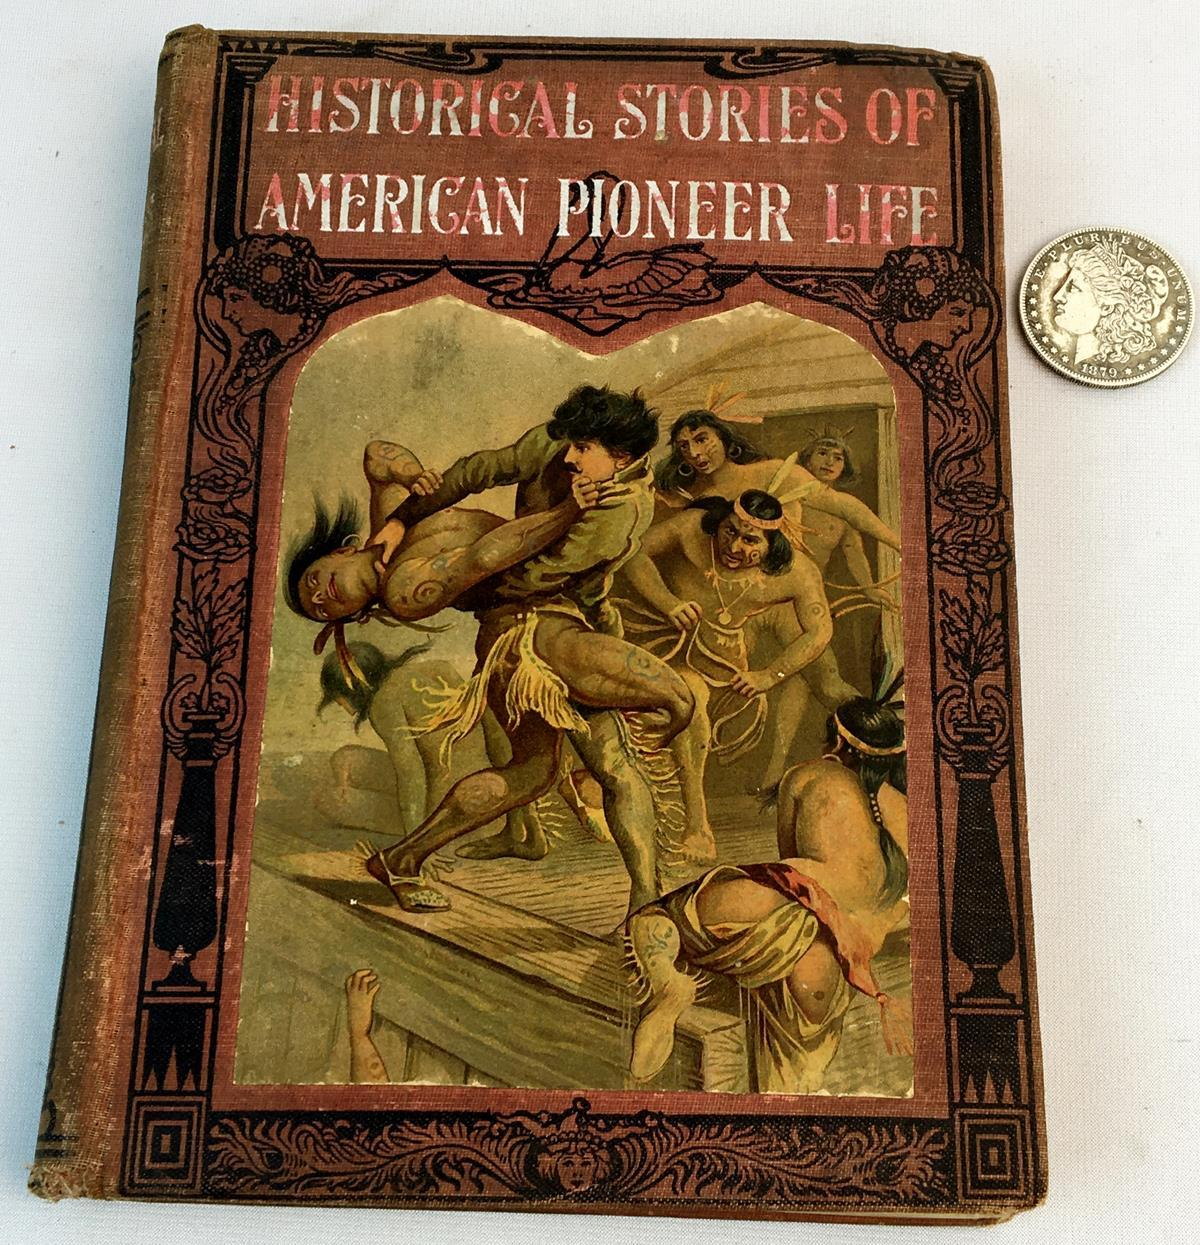 1897 Historical Stories of American Pioneer Life as Told in the Famous Leatherstocking Tales by J Fenimore Cooper ILLUSTRATED